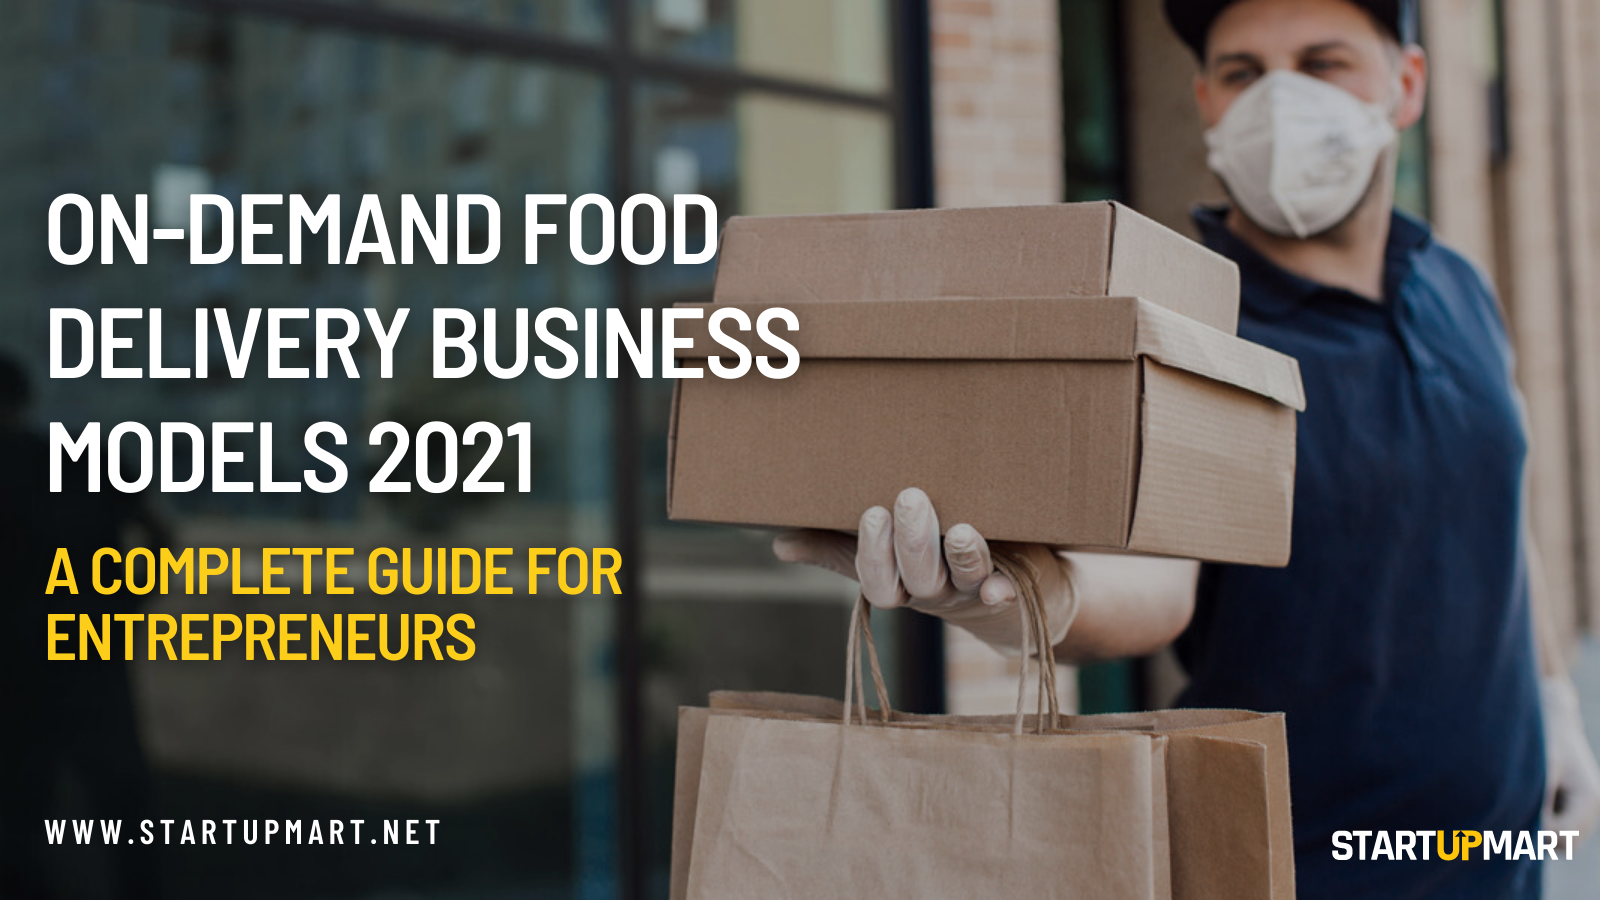 On-Demand Food Delivery Business Models 2021 : A Complete Guide For Entrepreneurs